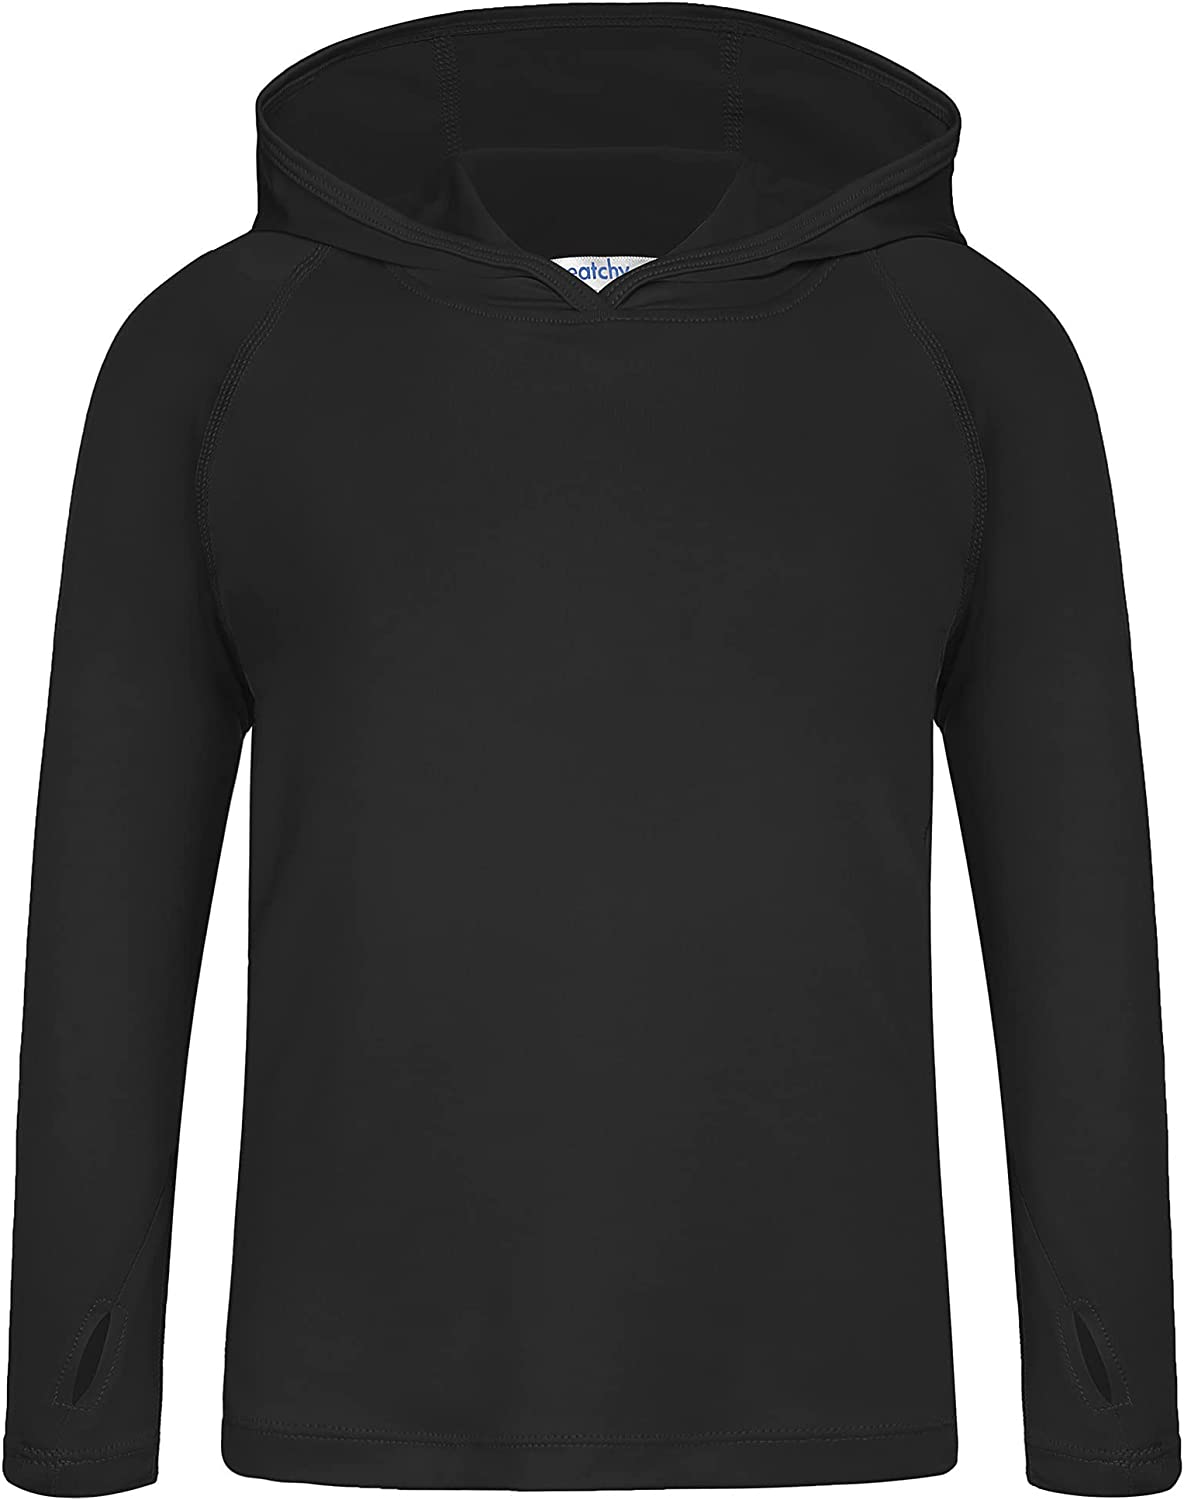 Greatchy Year-end Max 52% OFF annual account Girls Long Sleeve Shirt Sport Active Lightweight Hoodie